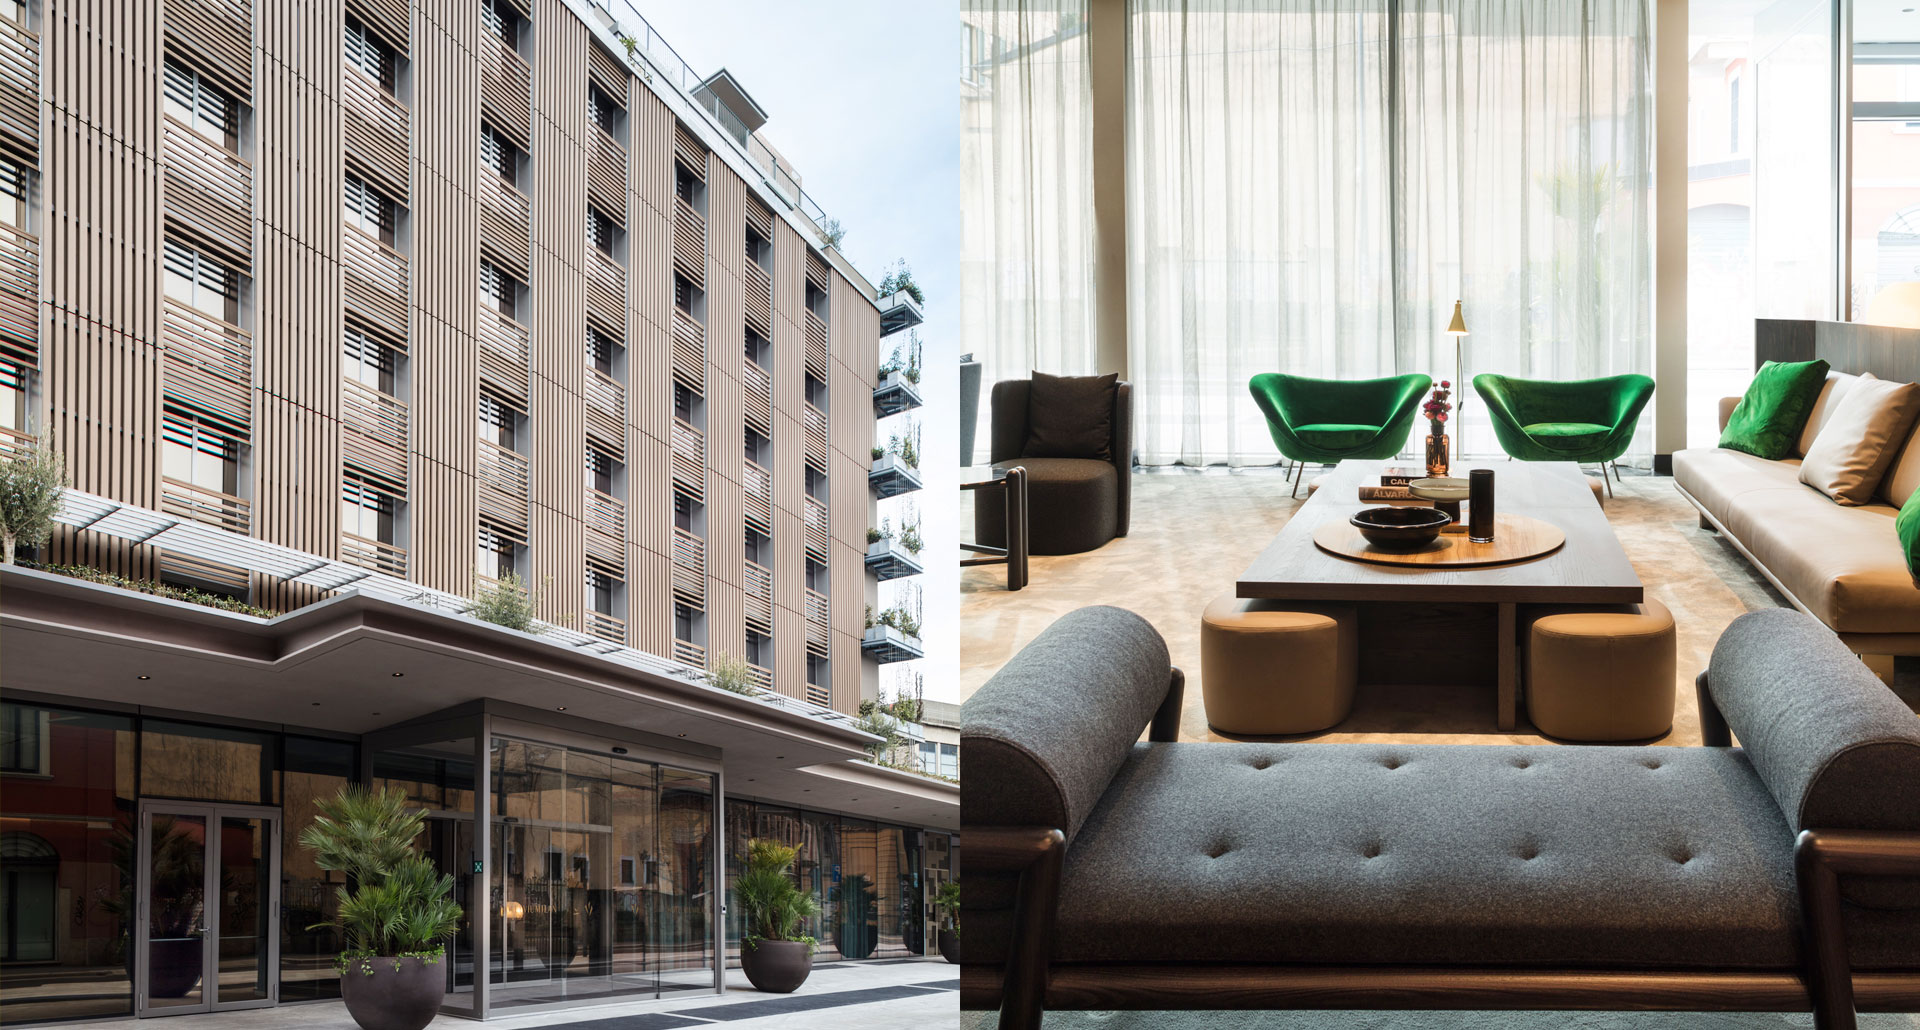 Viu Hotel - boutique hotel in Milan